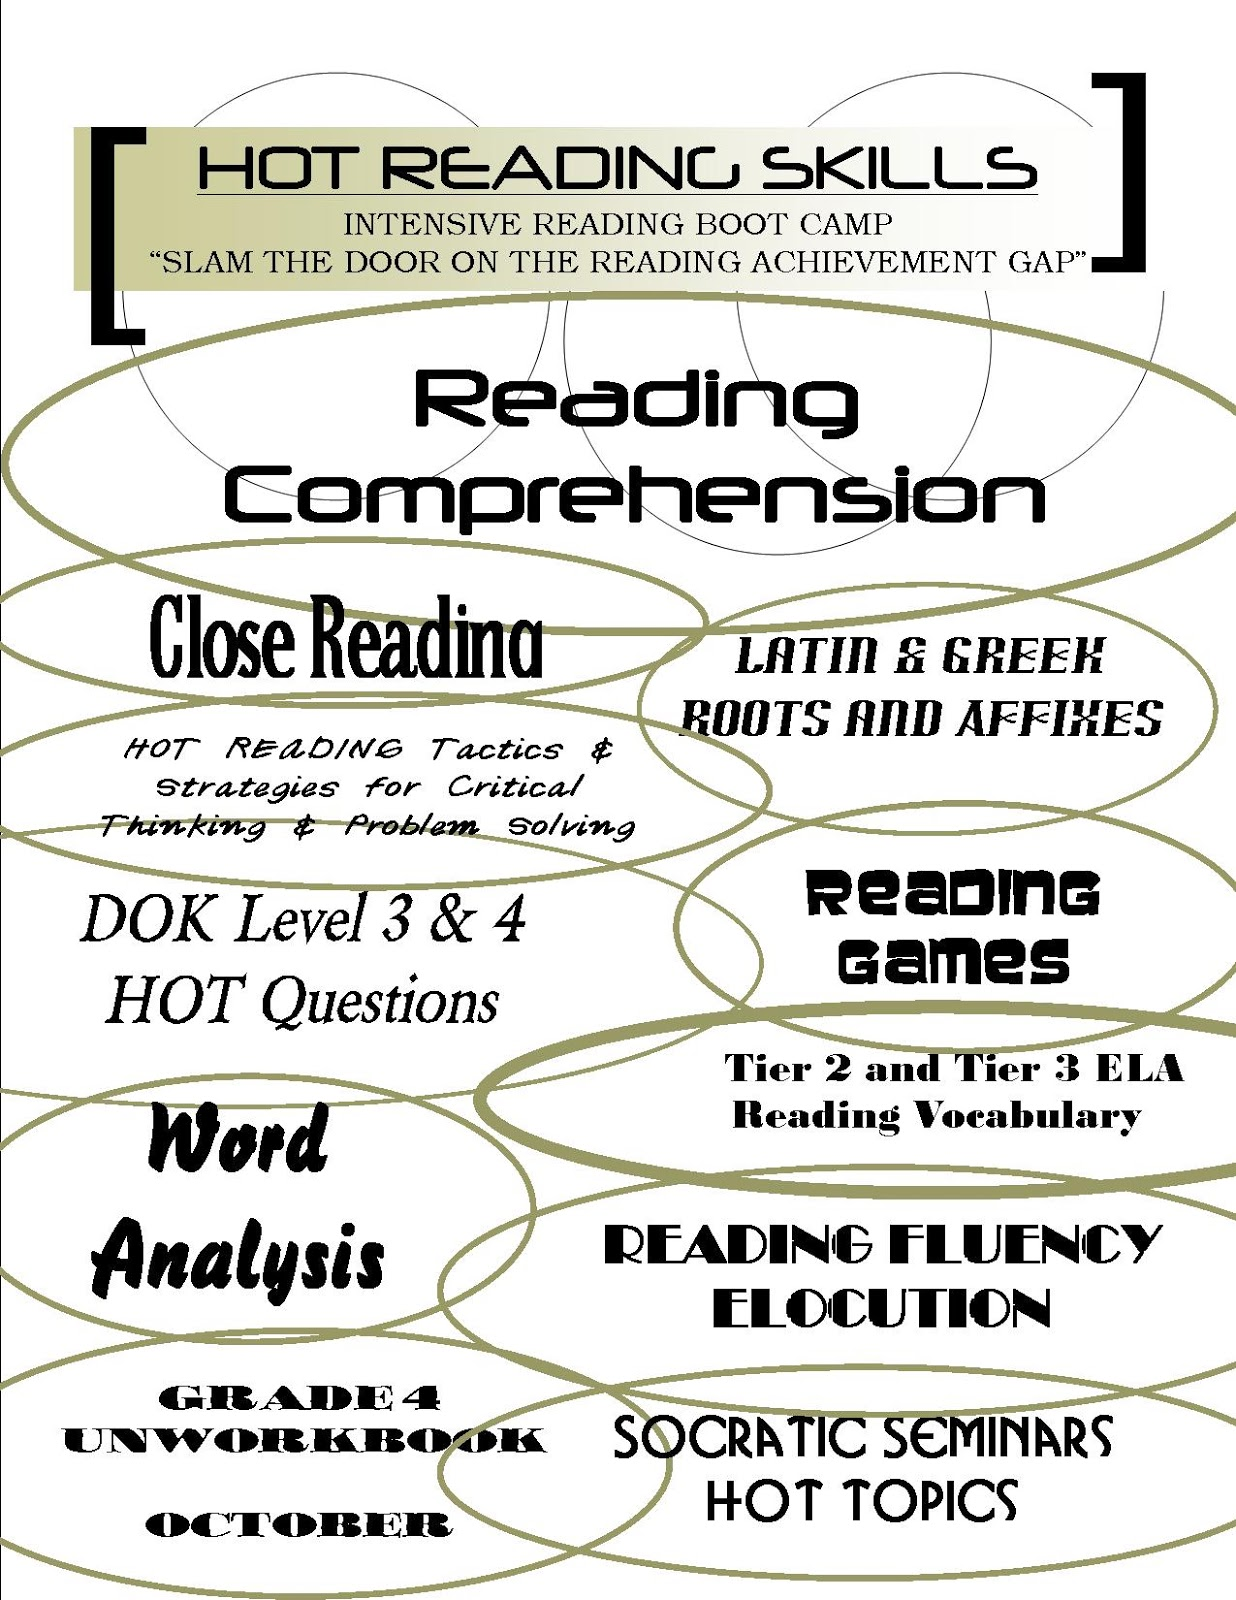 worksheet Common Core Reading Comprehension Worksheets 4th Grade reading sage common core passages authors purpose grade prepare your students with intensive dok level 3 and 4 two step comprehension questions targeted word study rigorous